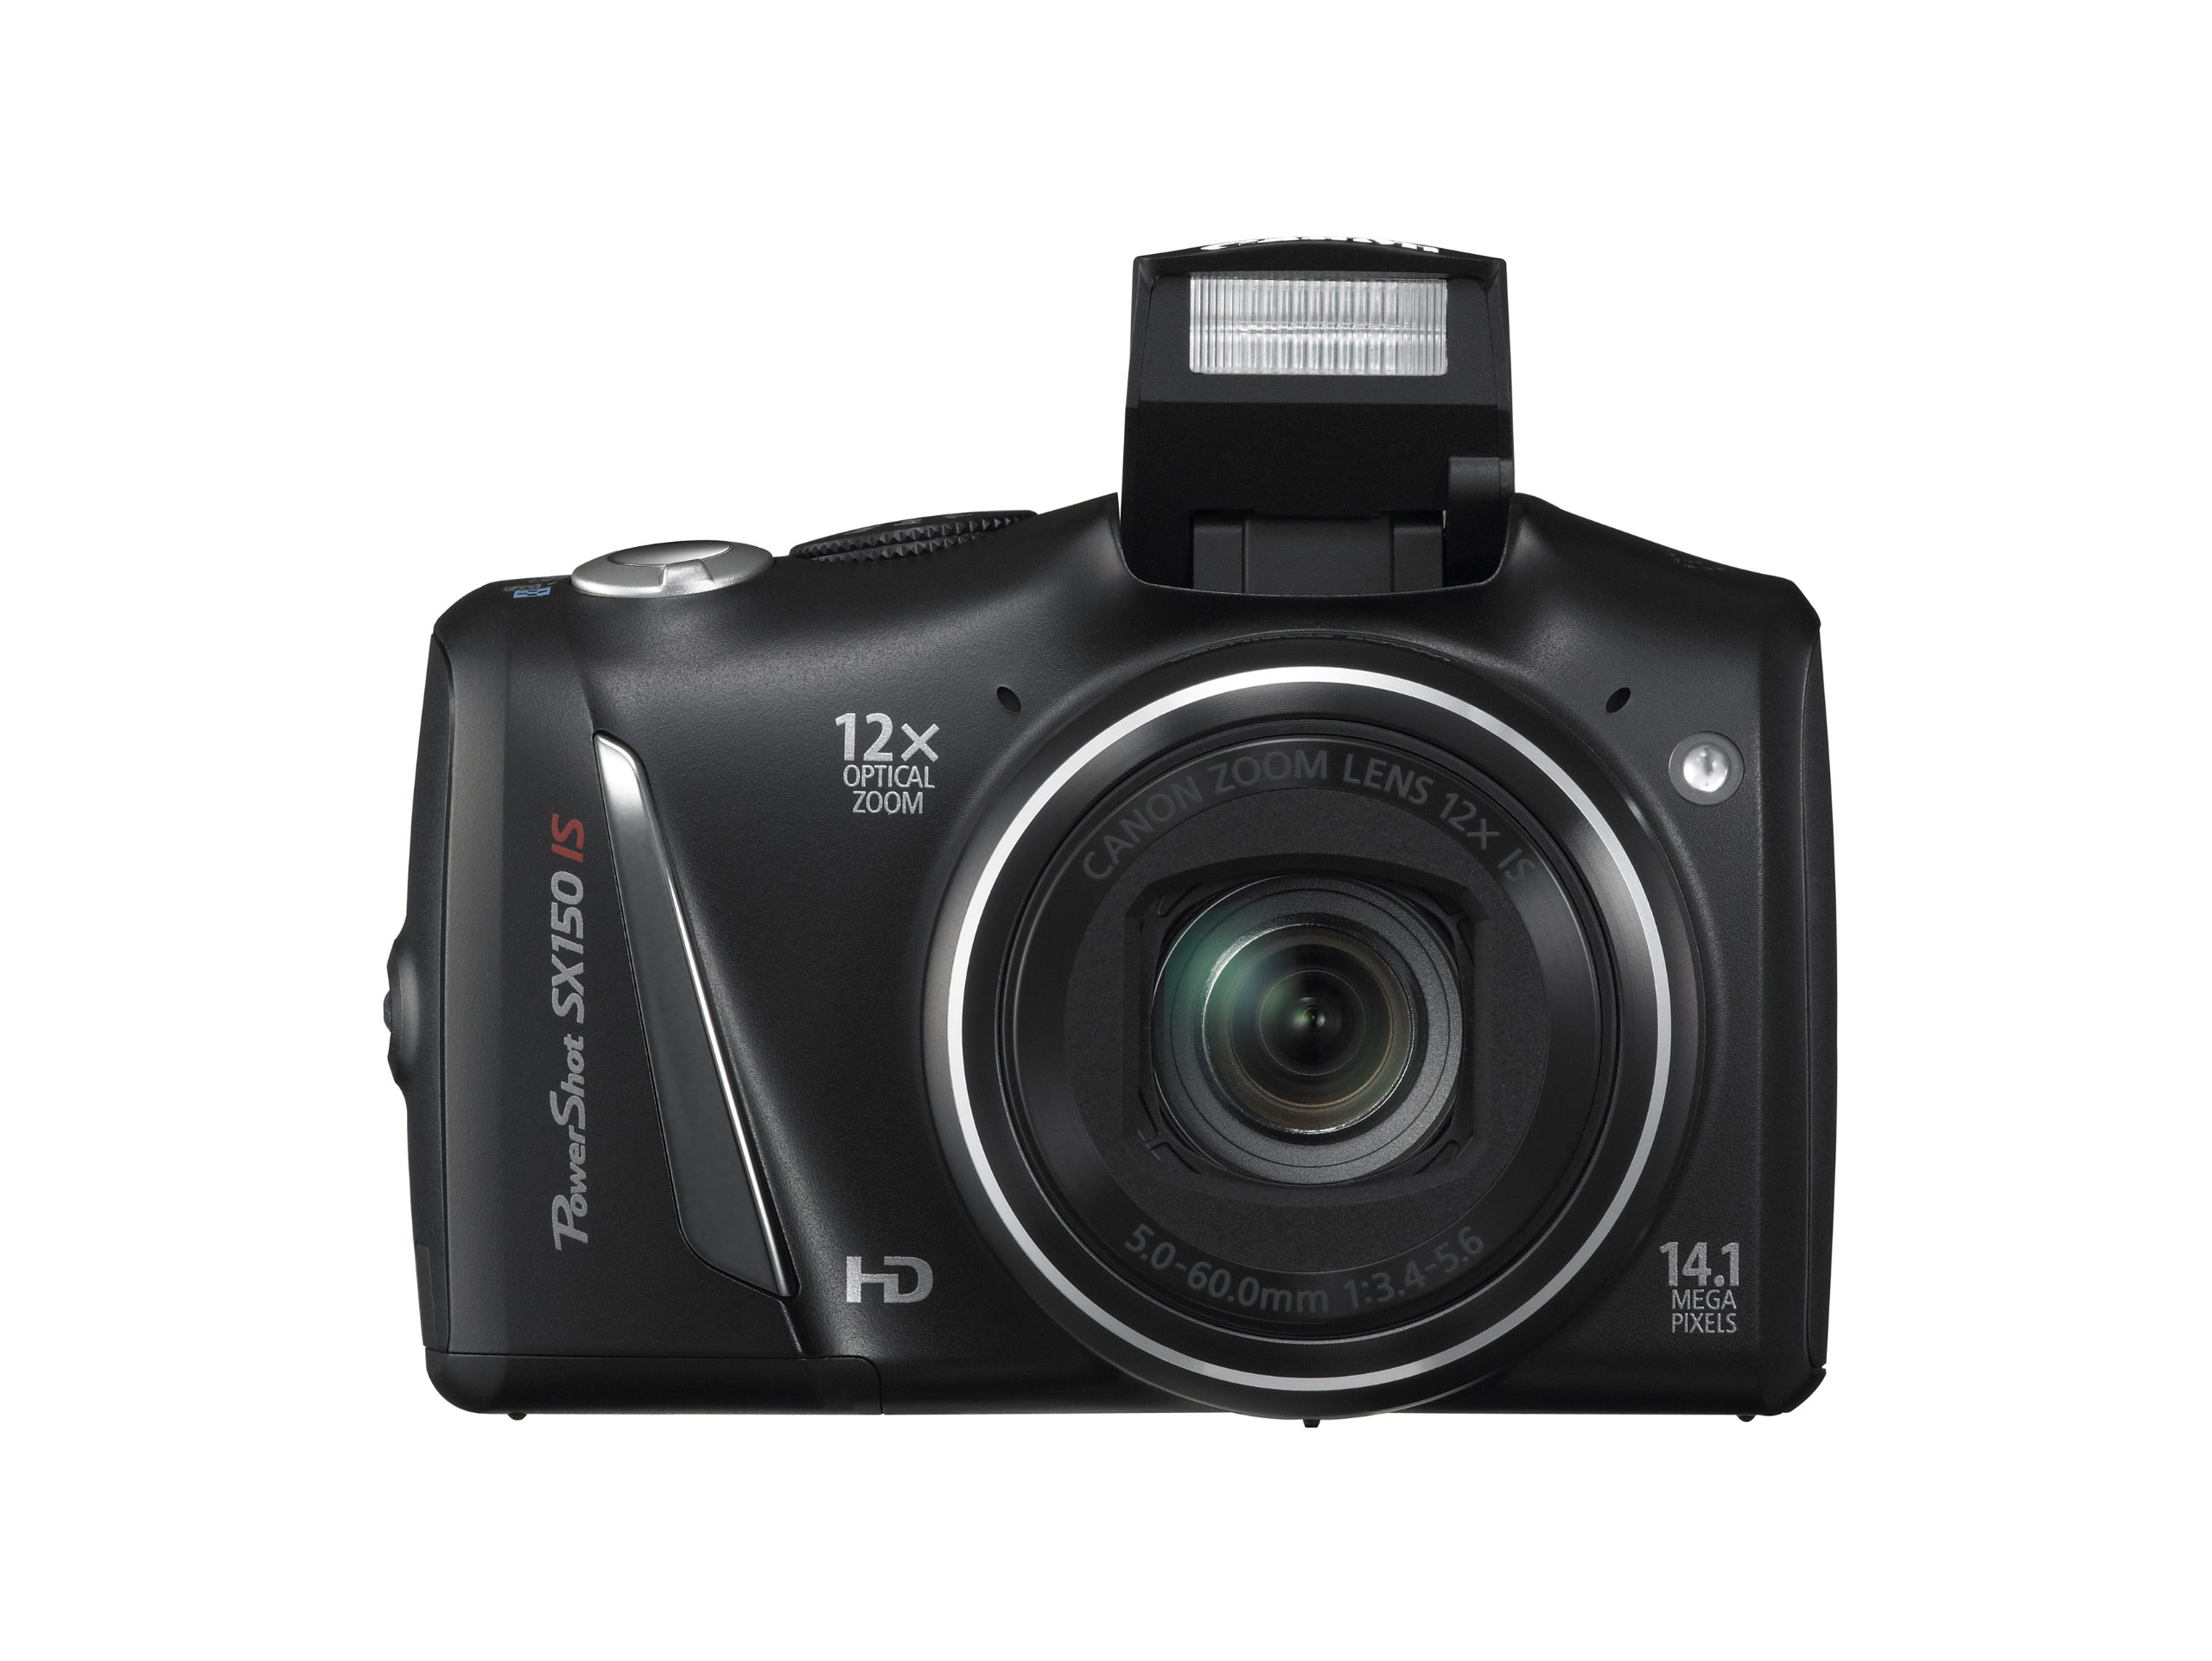 Canon PowerShot SX150 IS 14.1 MP Digital Camera with 12x Wide-Angle Optical Image Stabilized Zoom with 3.0-Inch LCD (Black) (OLD MODEL) by Canon (Image #4)